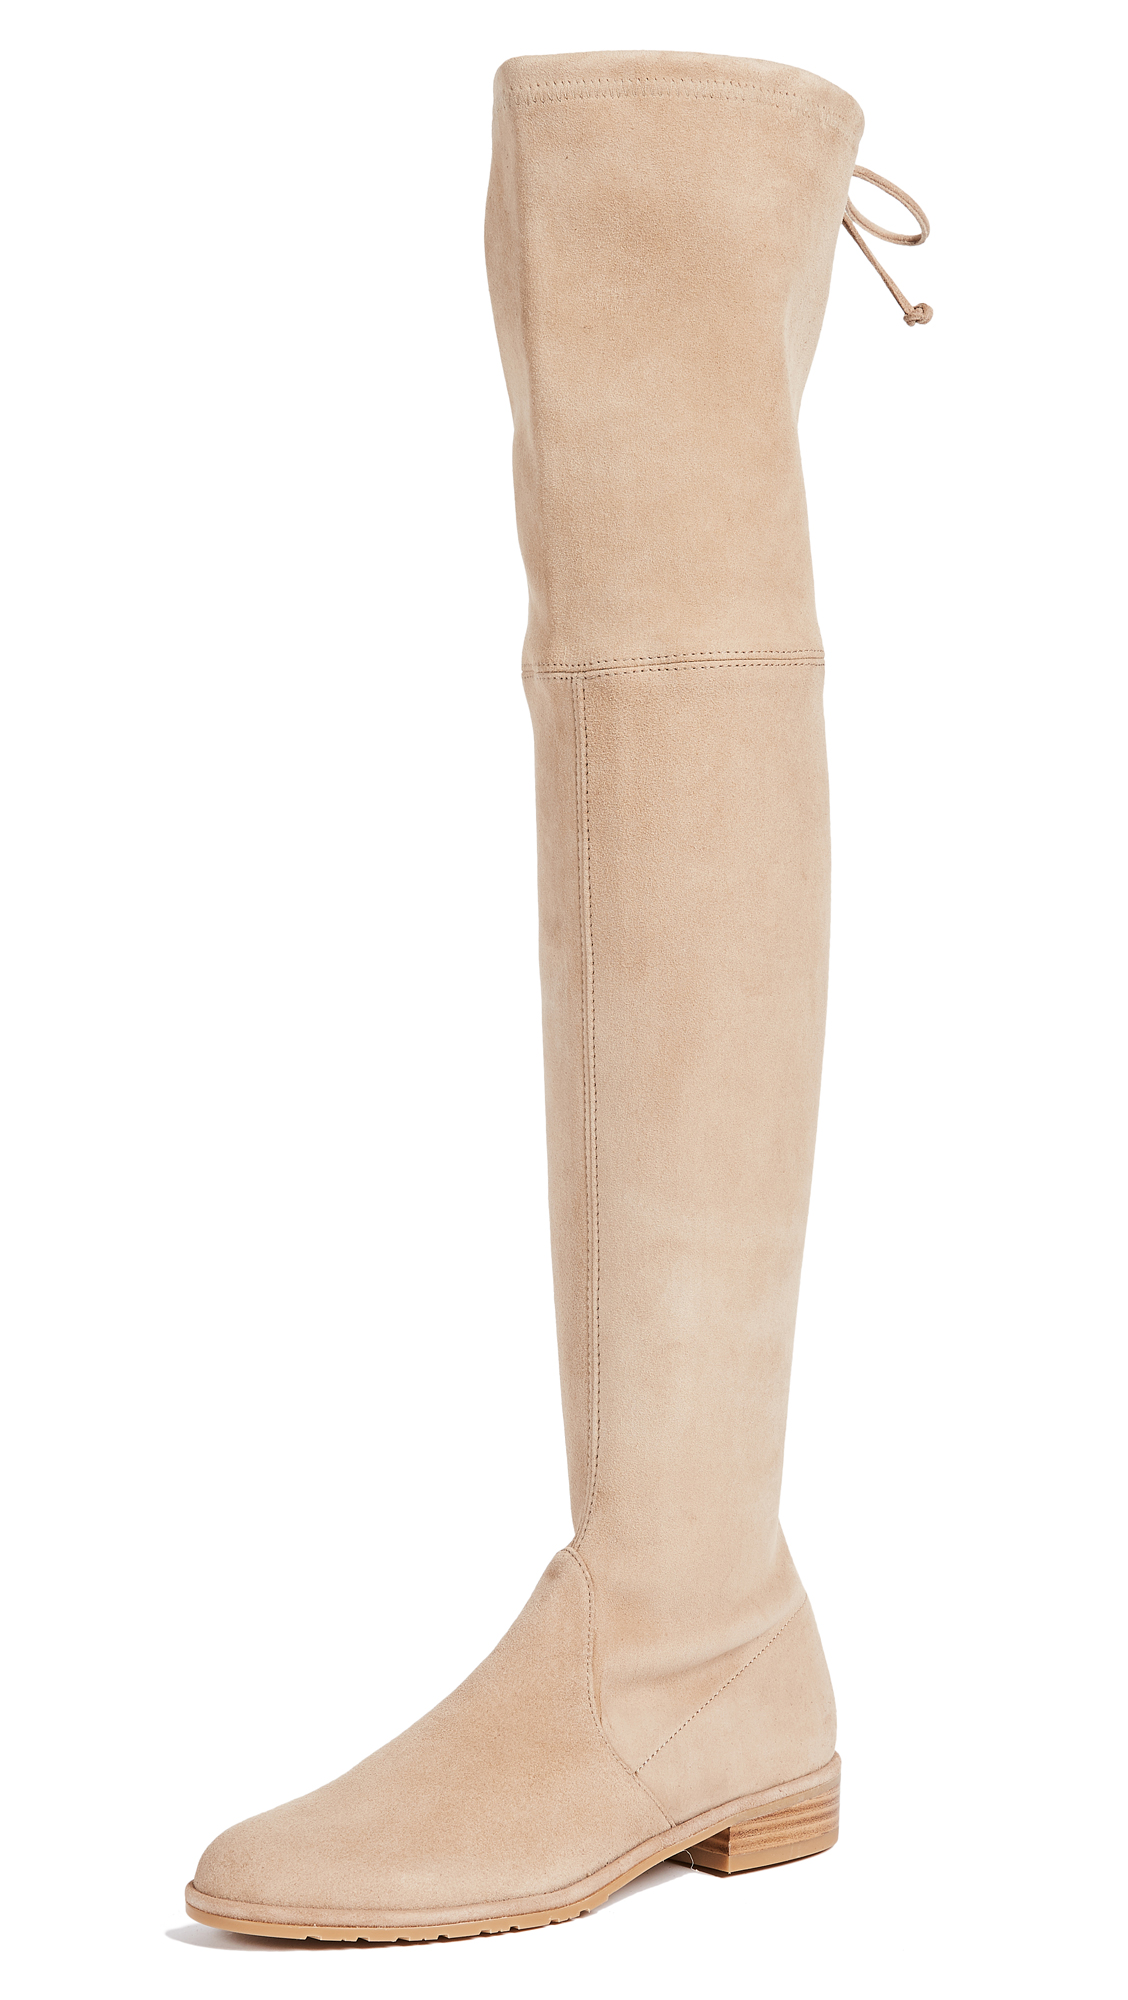 Stuart Weitzman Lowland Over the Knee Boots - Mojave